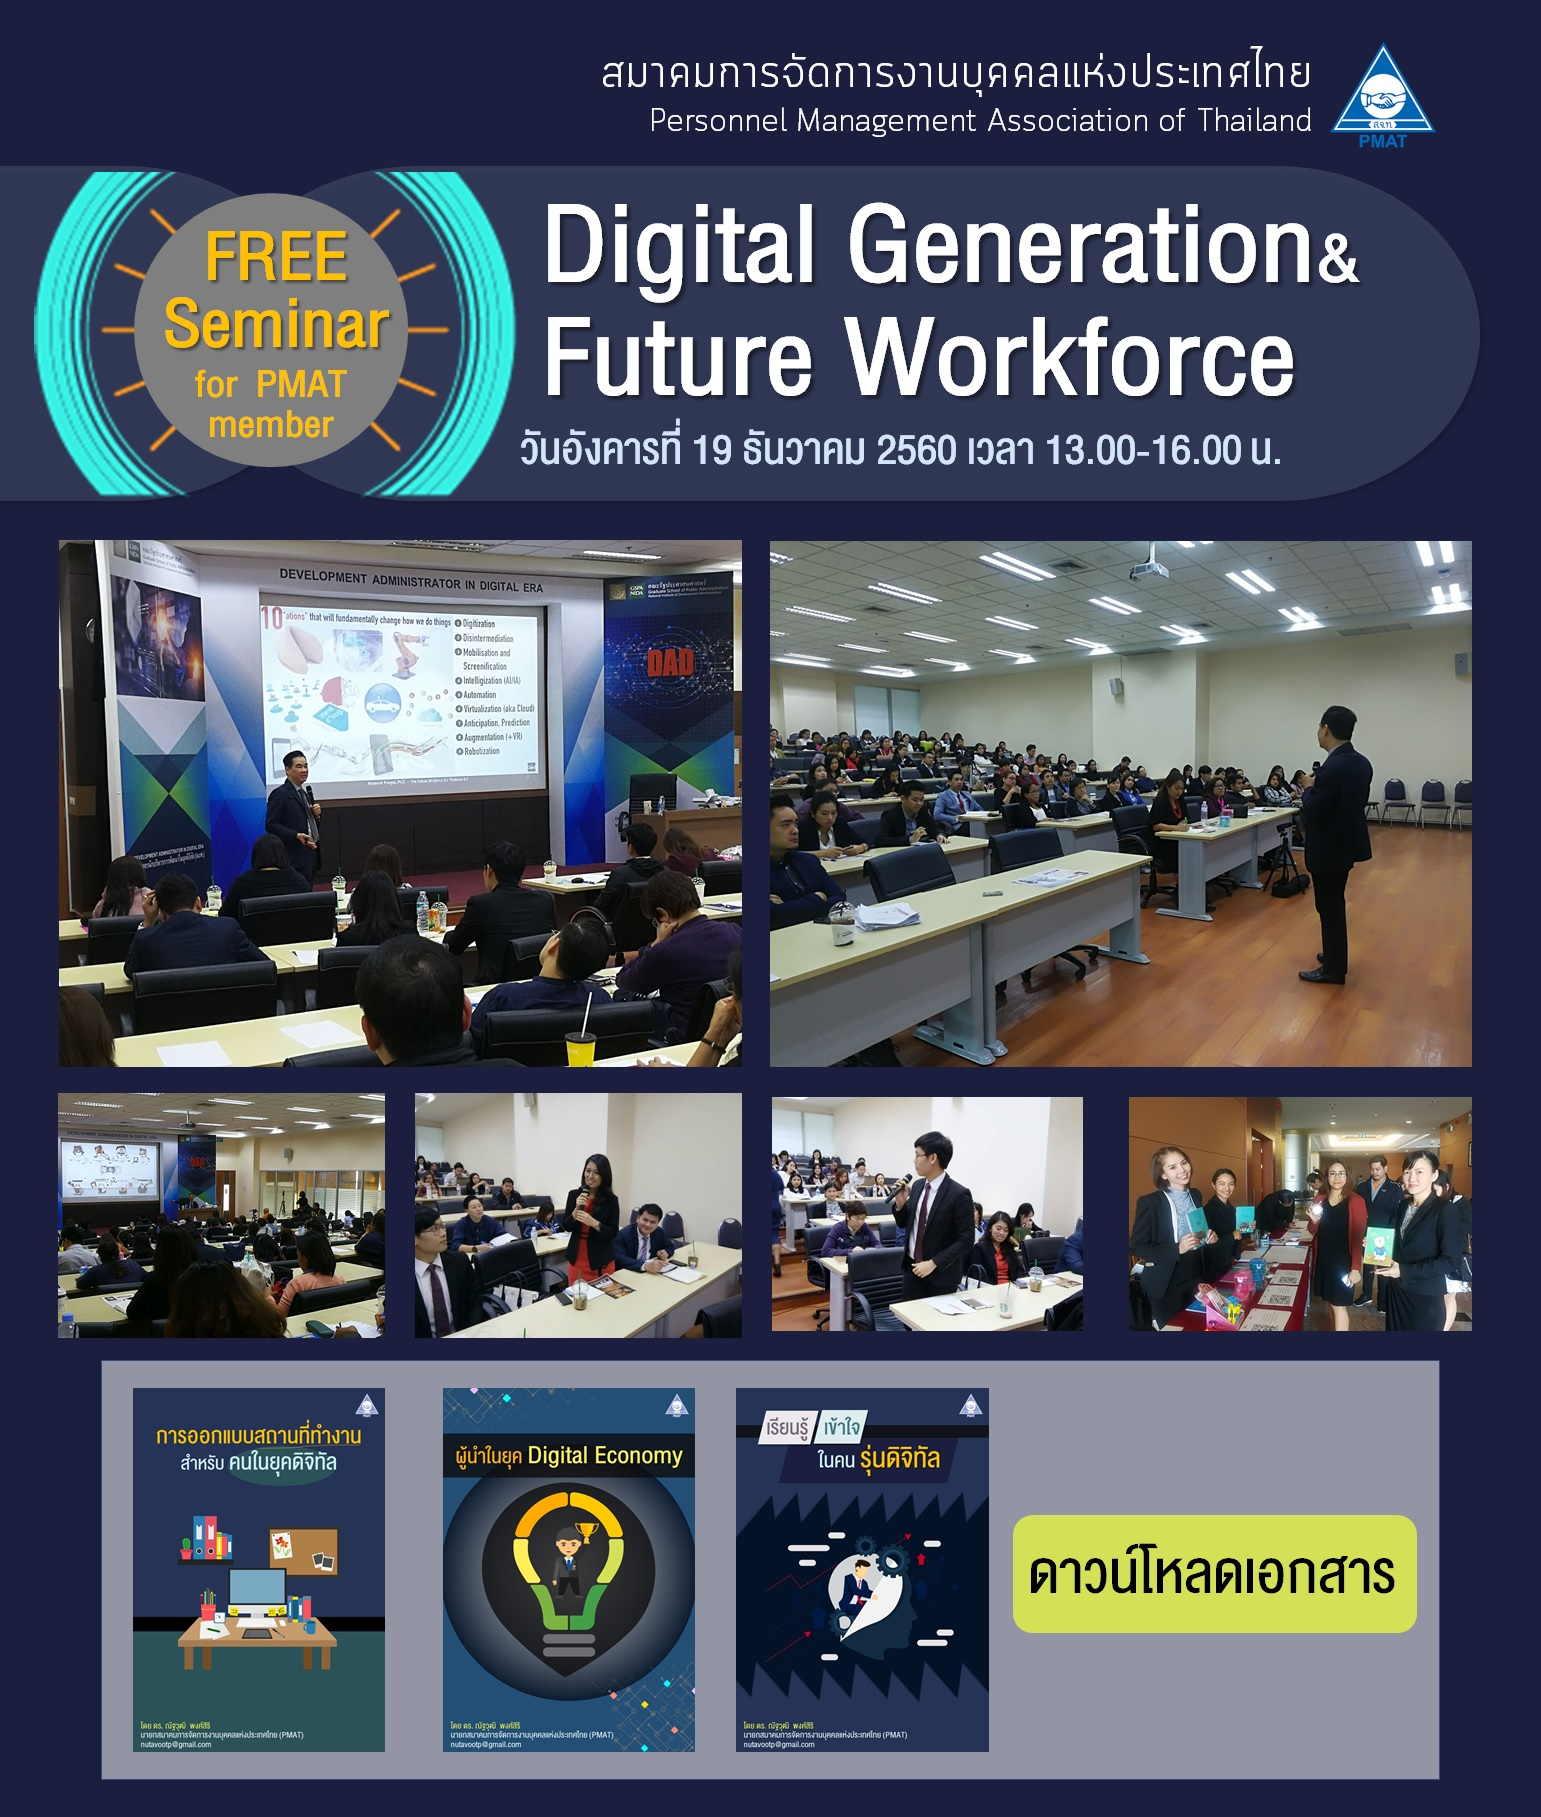 Digital Generation & Future Workforce